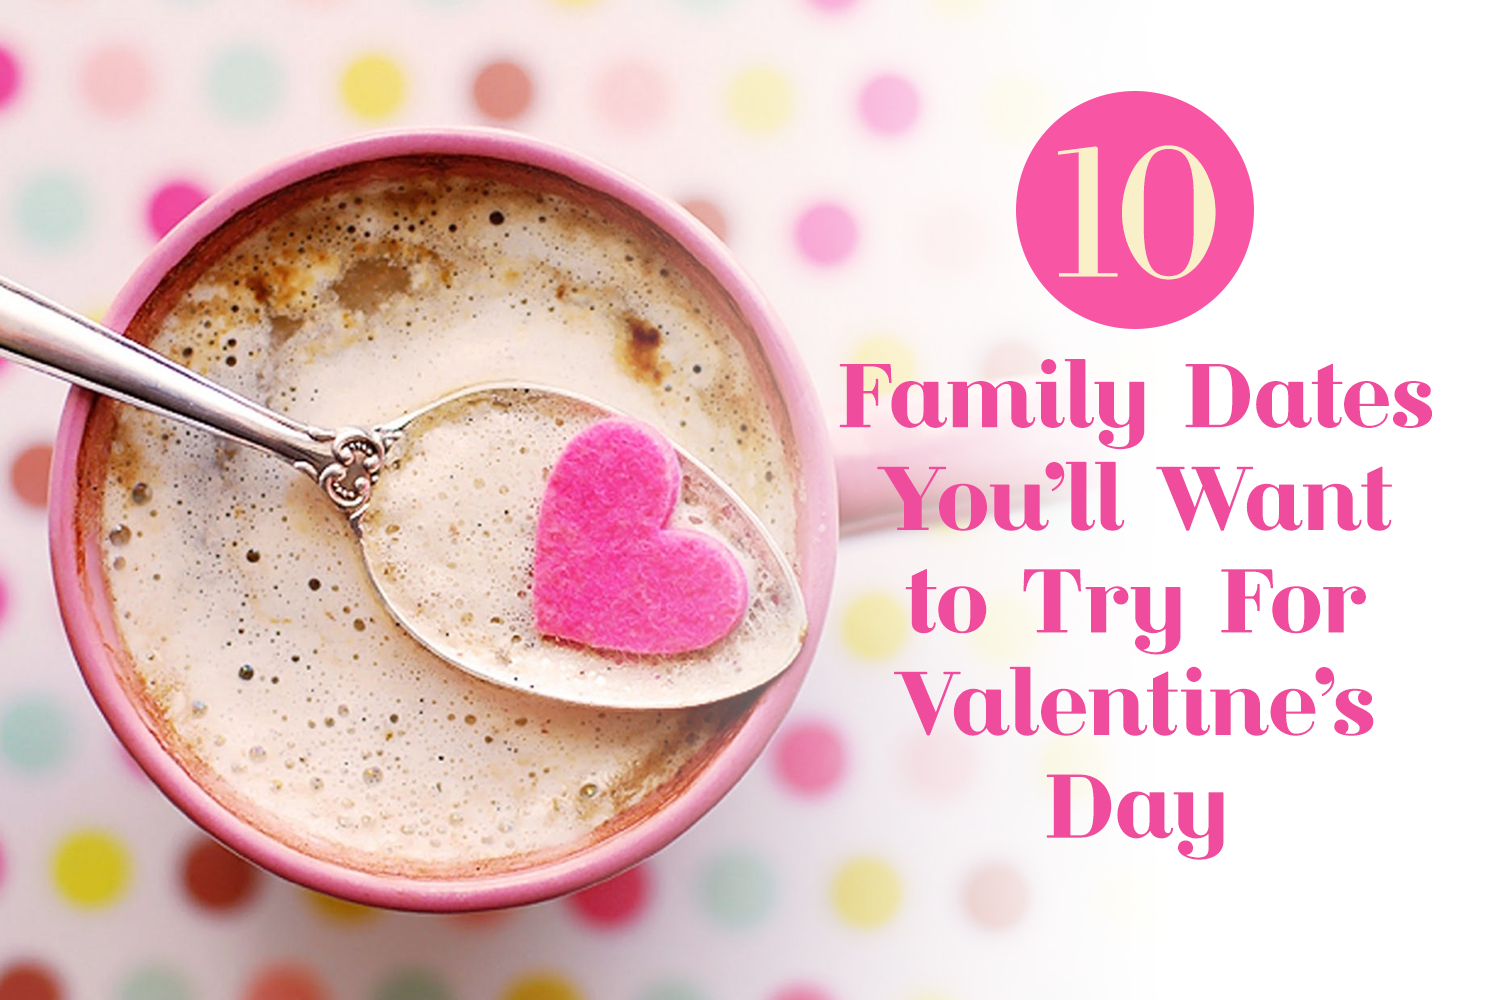 10 Family Dates You'll Want to Try For Valentine's Day